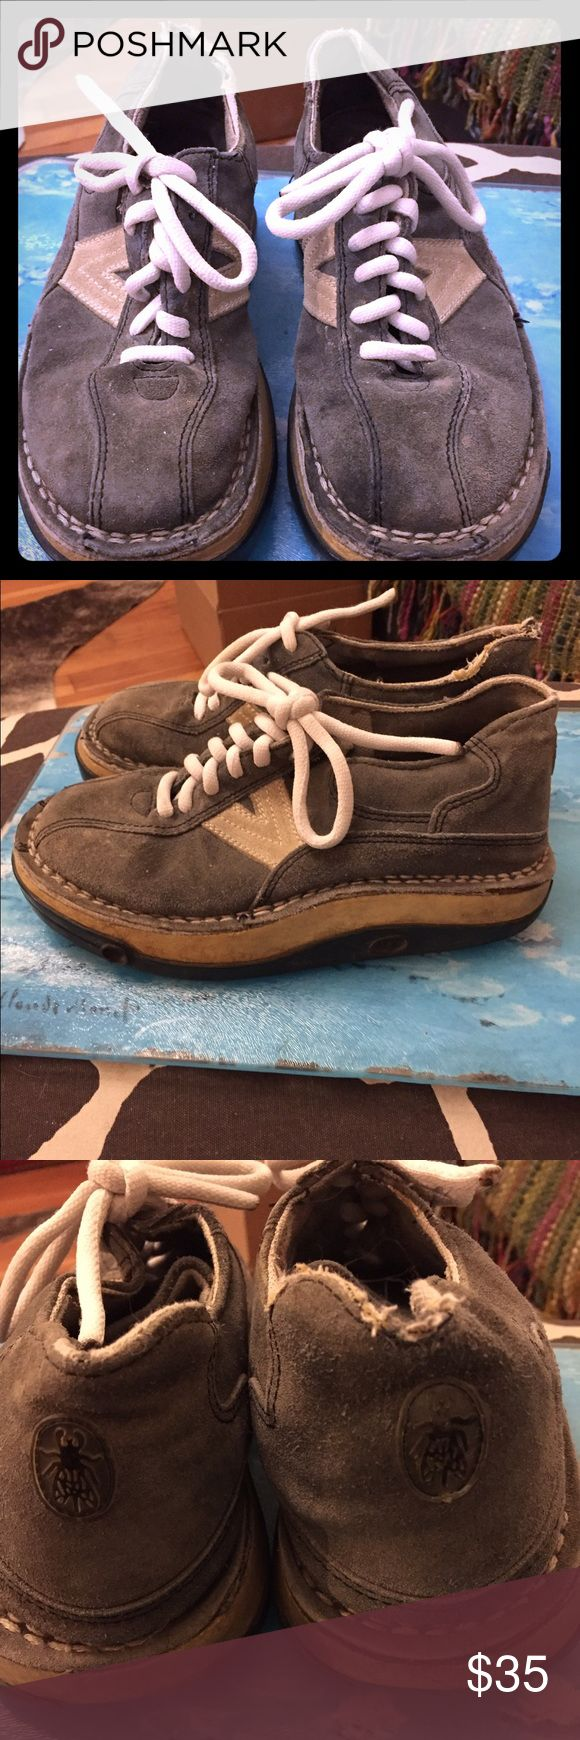 London fly, platform leather sneakers I am having a buy one get one free sale tonight.  purchase the more expensive item and like your free item, ( something of equal or lesser price) also tell me and I will delete it and throw it in your box. Merry Christmas everybody!!! london fly Shoes Sneakers